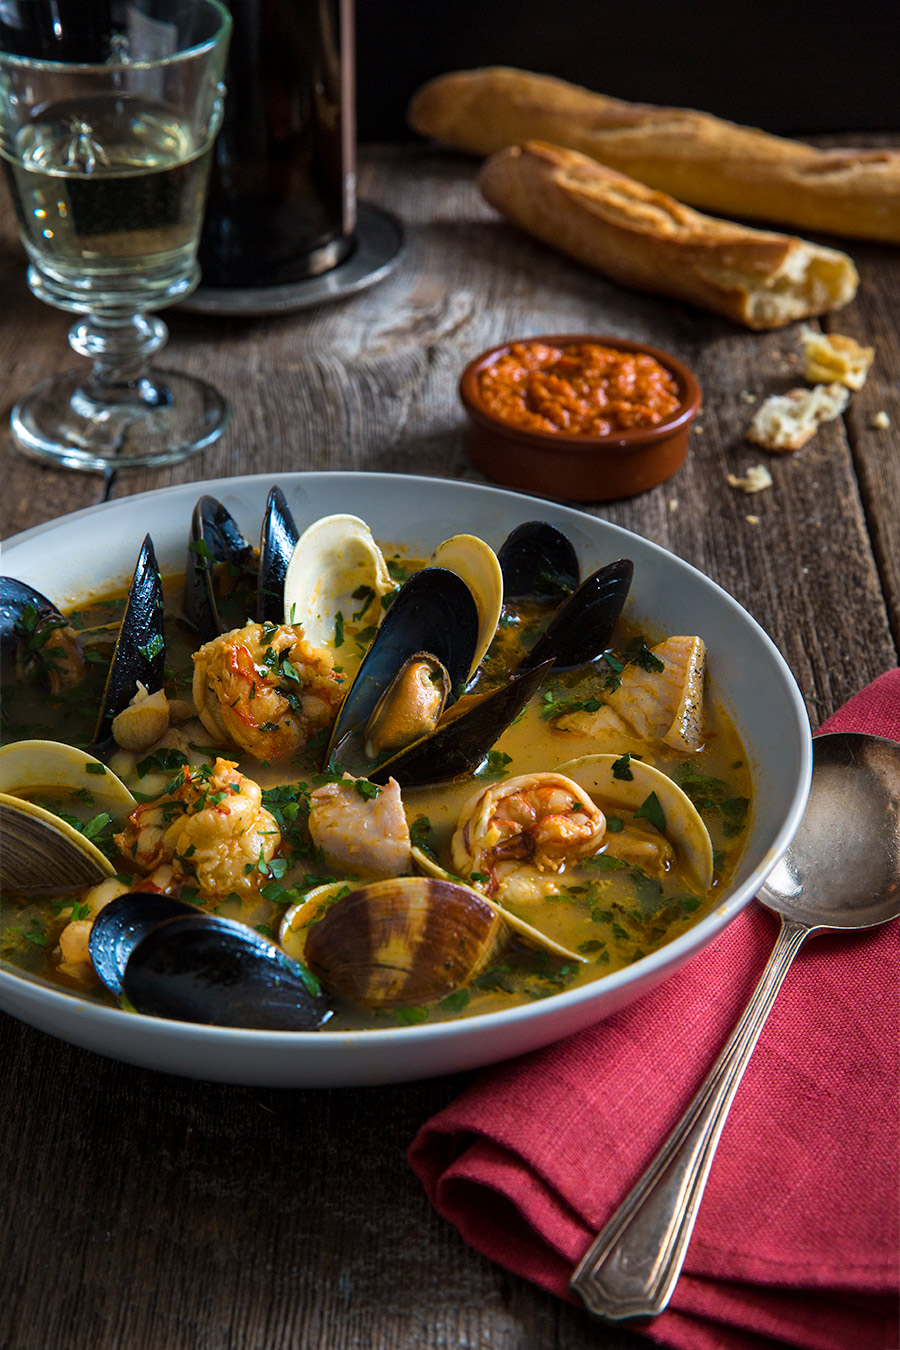 Bouillabaisse recipe and food photography from mortar-and-pestle.ca